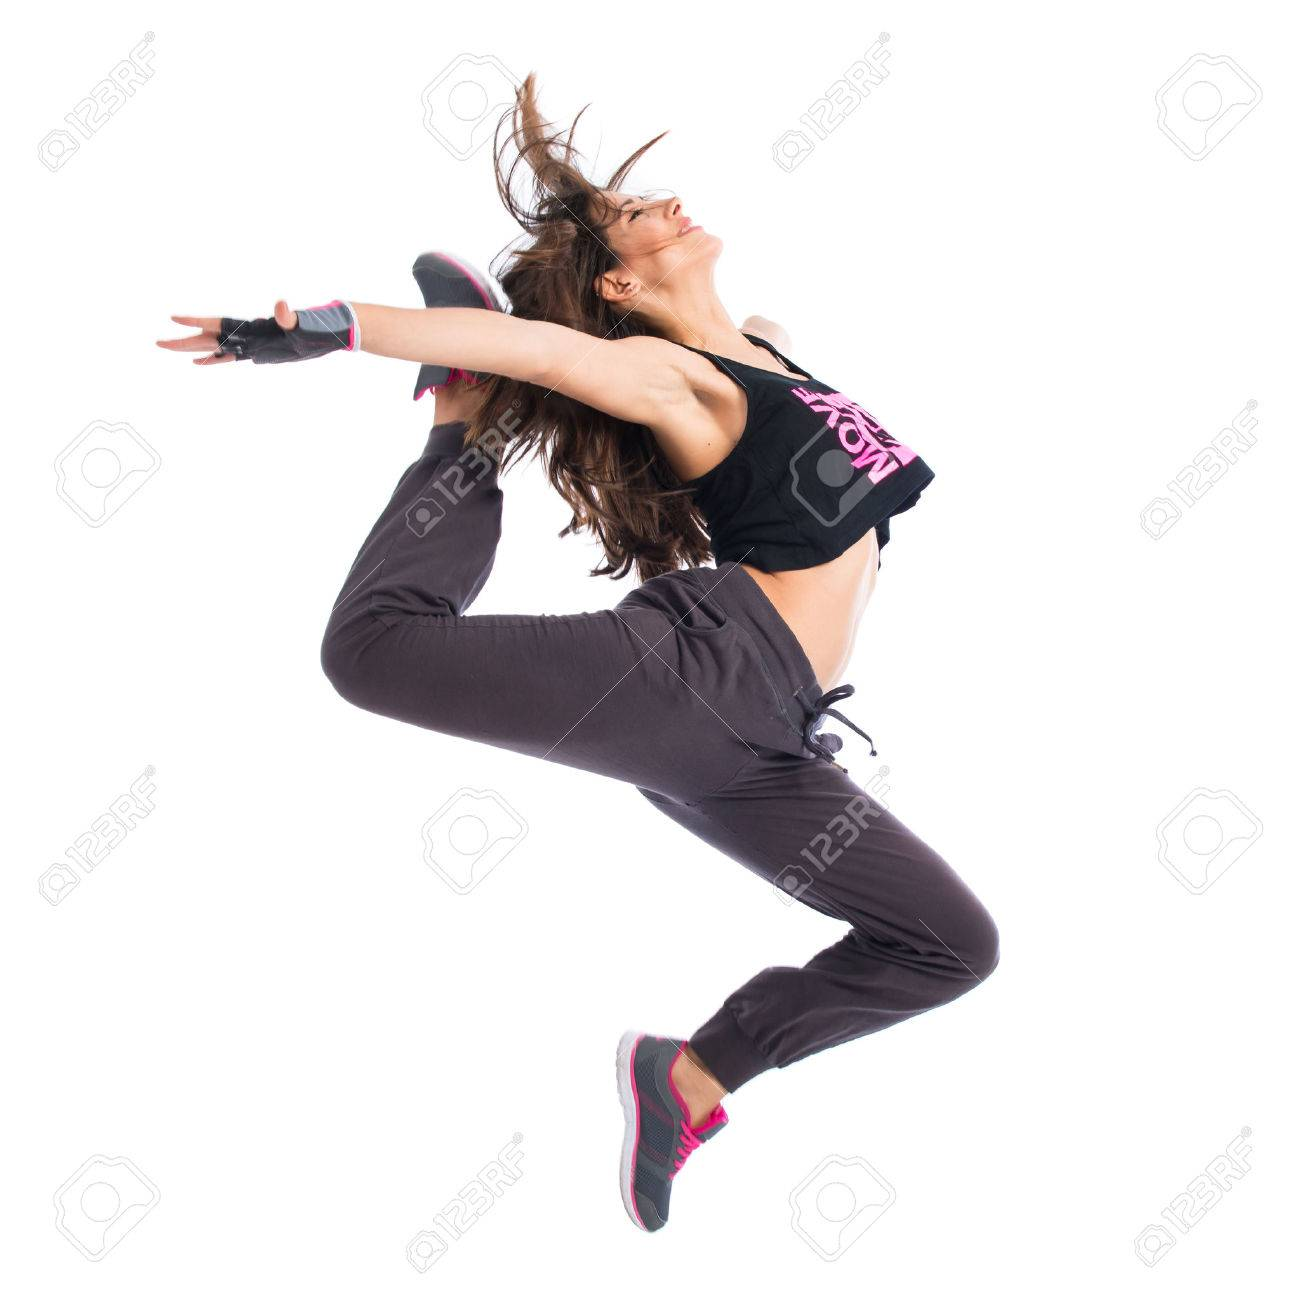 Teenager girl jumping in hip hop style Stock Photo - 41206168